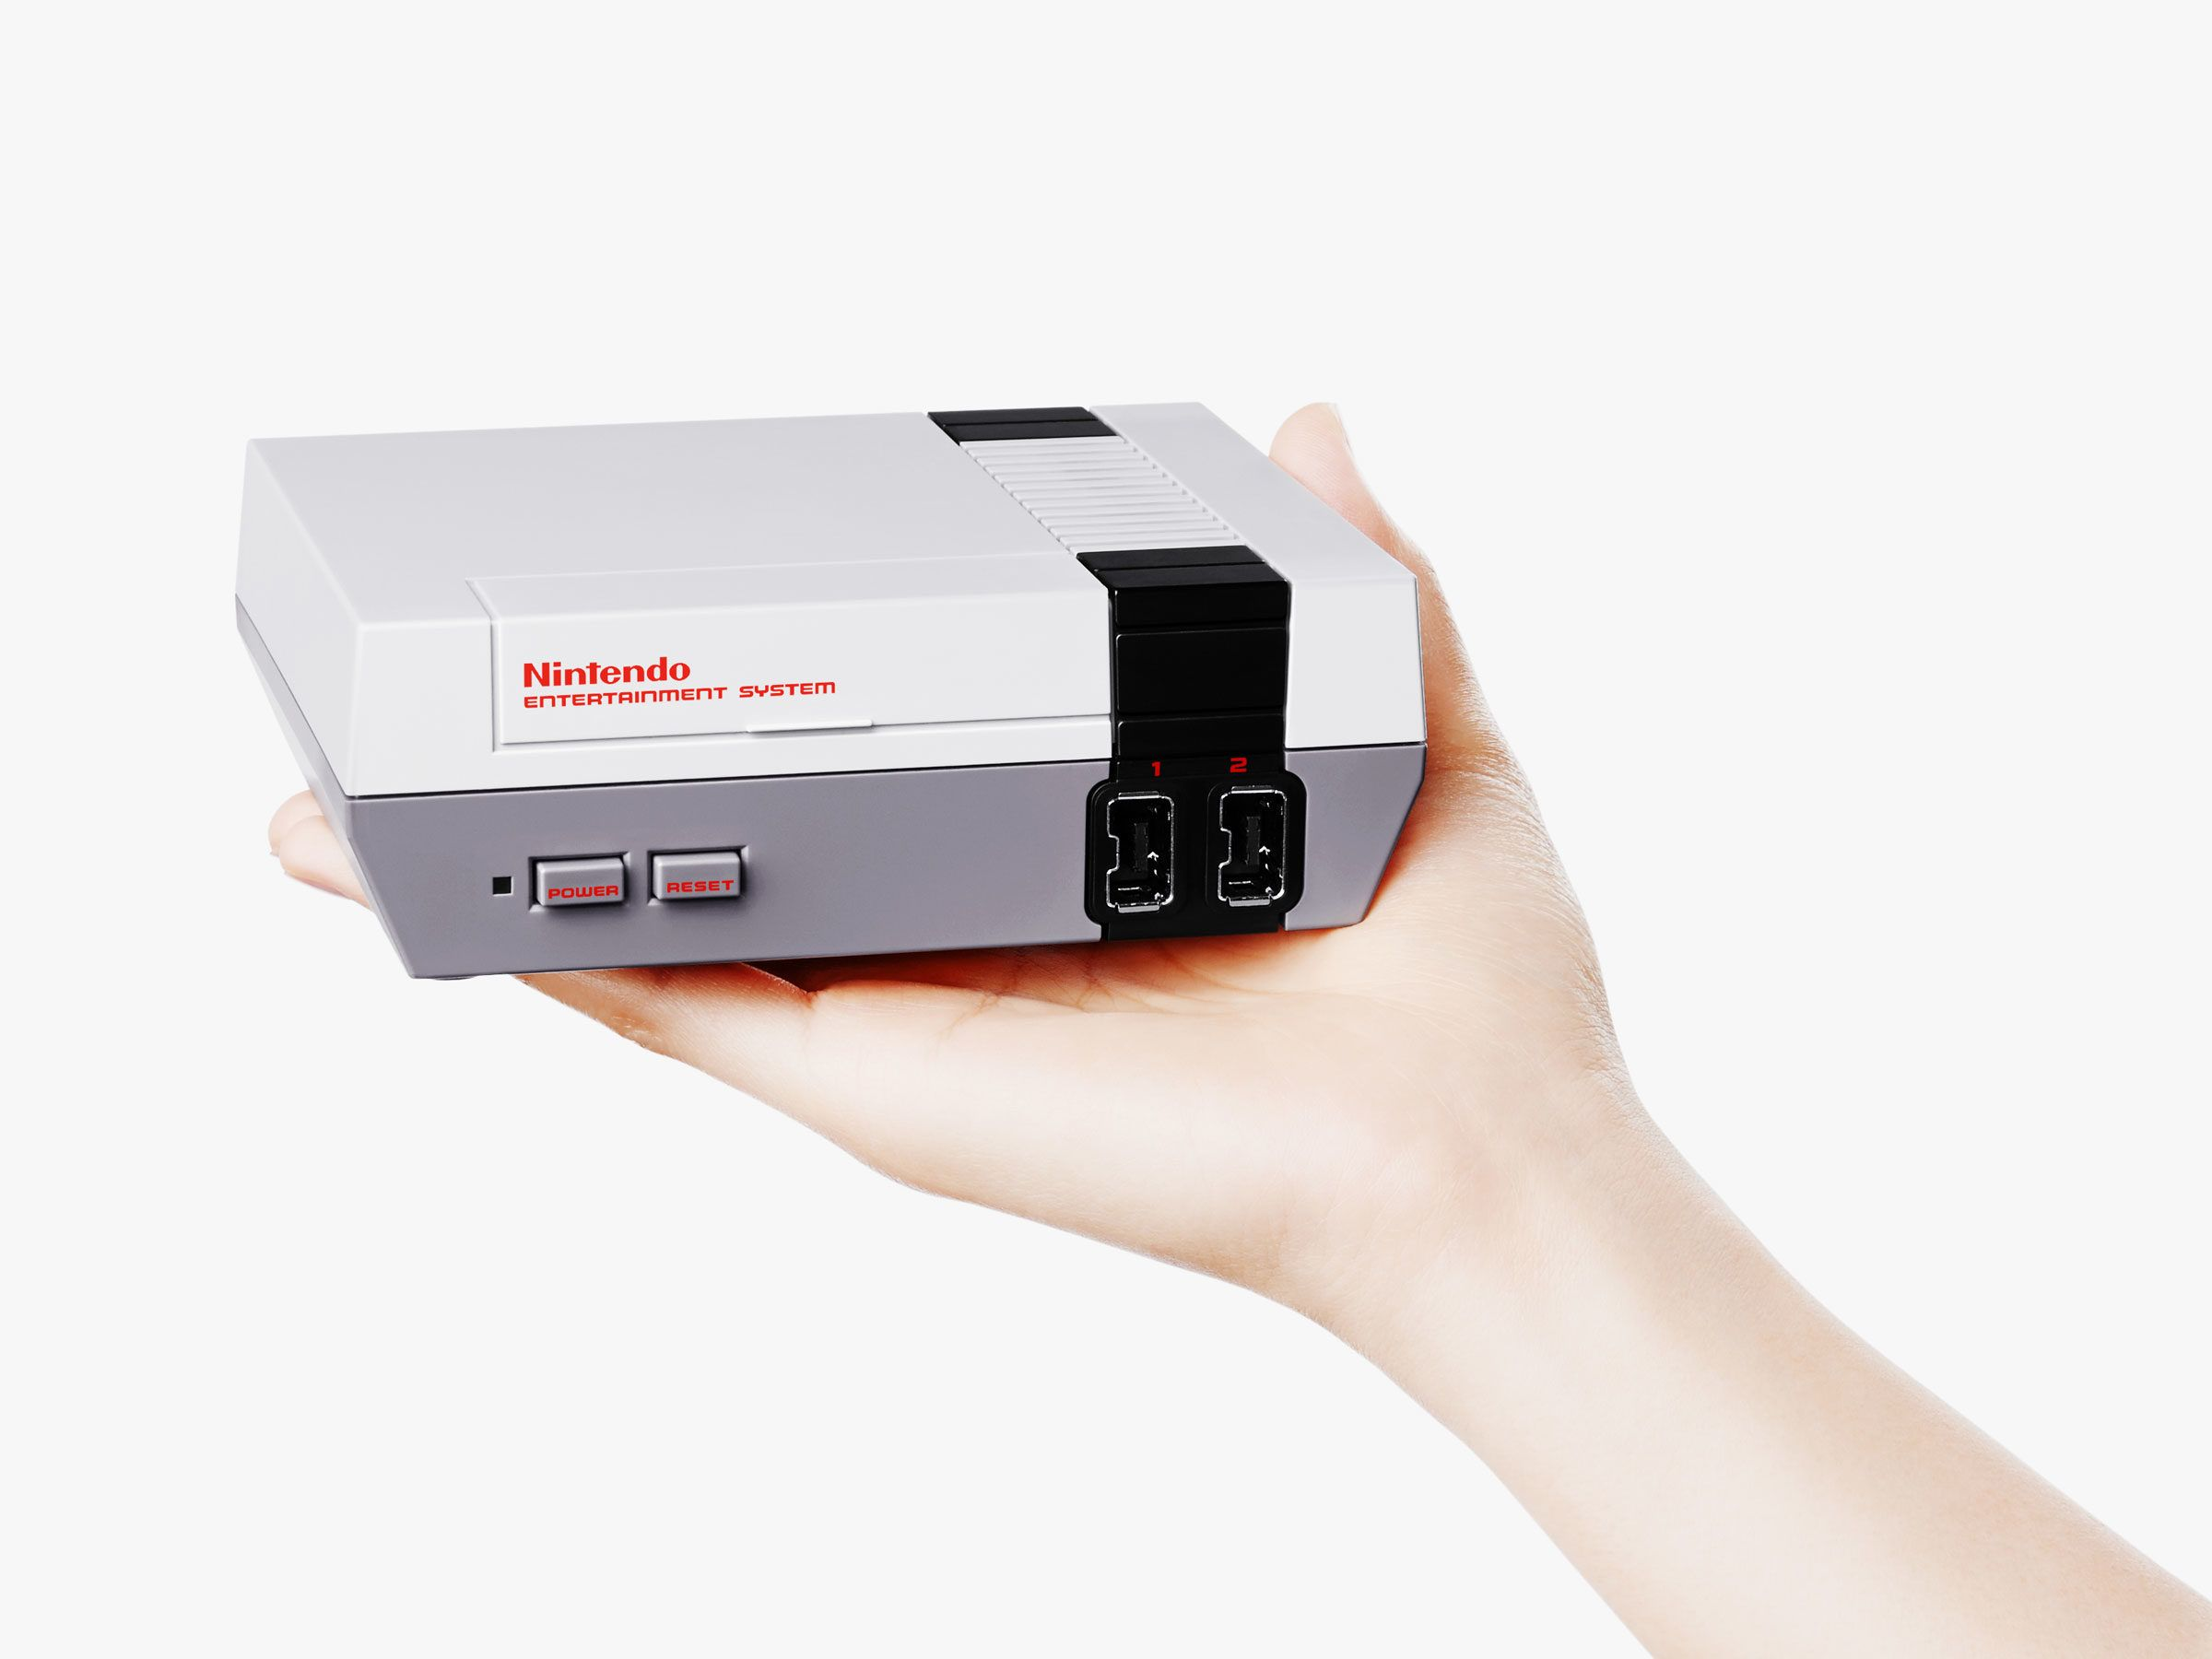 Nintendo Might Just Rule The Holidays With A Stocking Stufferthe